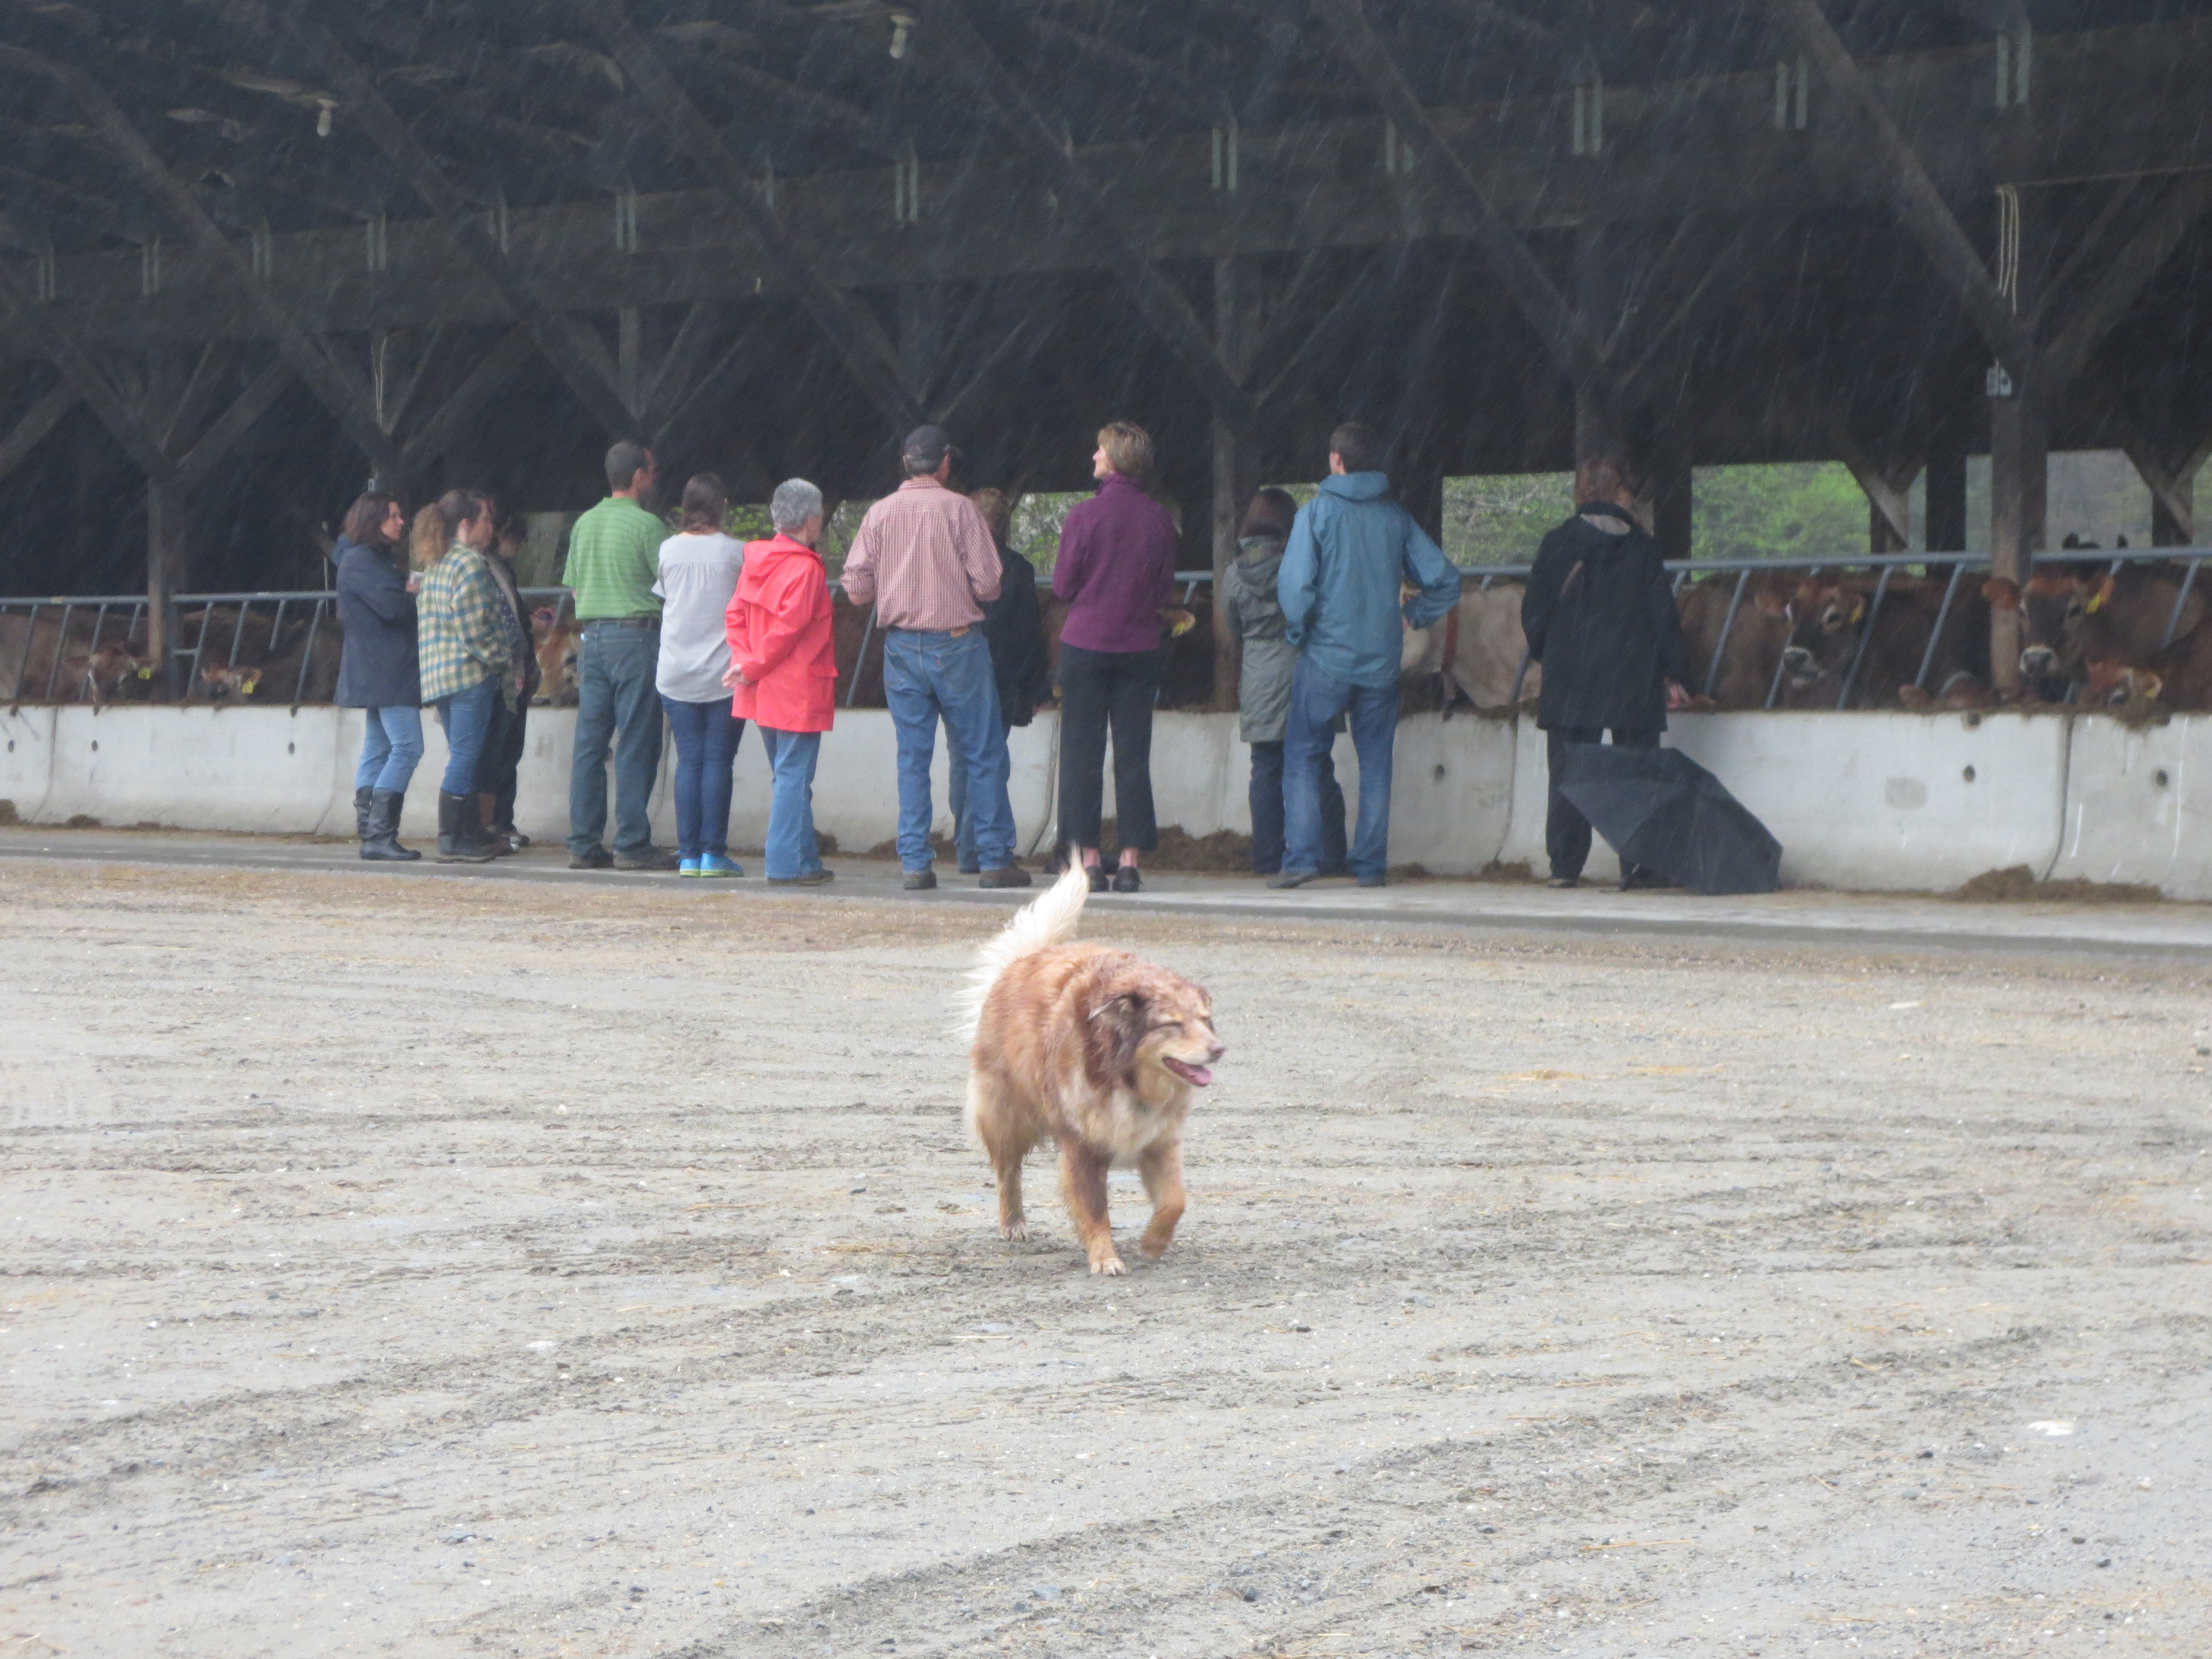 You'll find all kinds of friends on the farm!